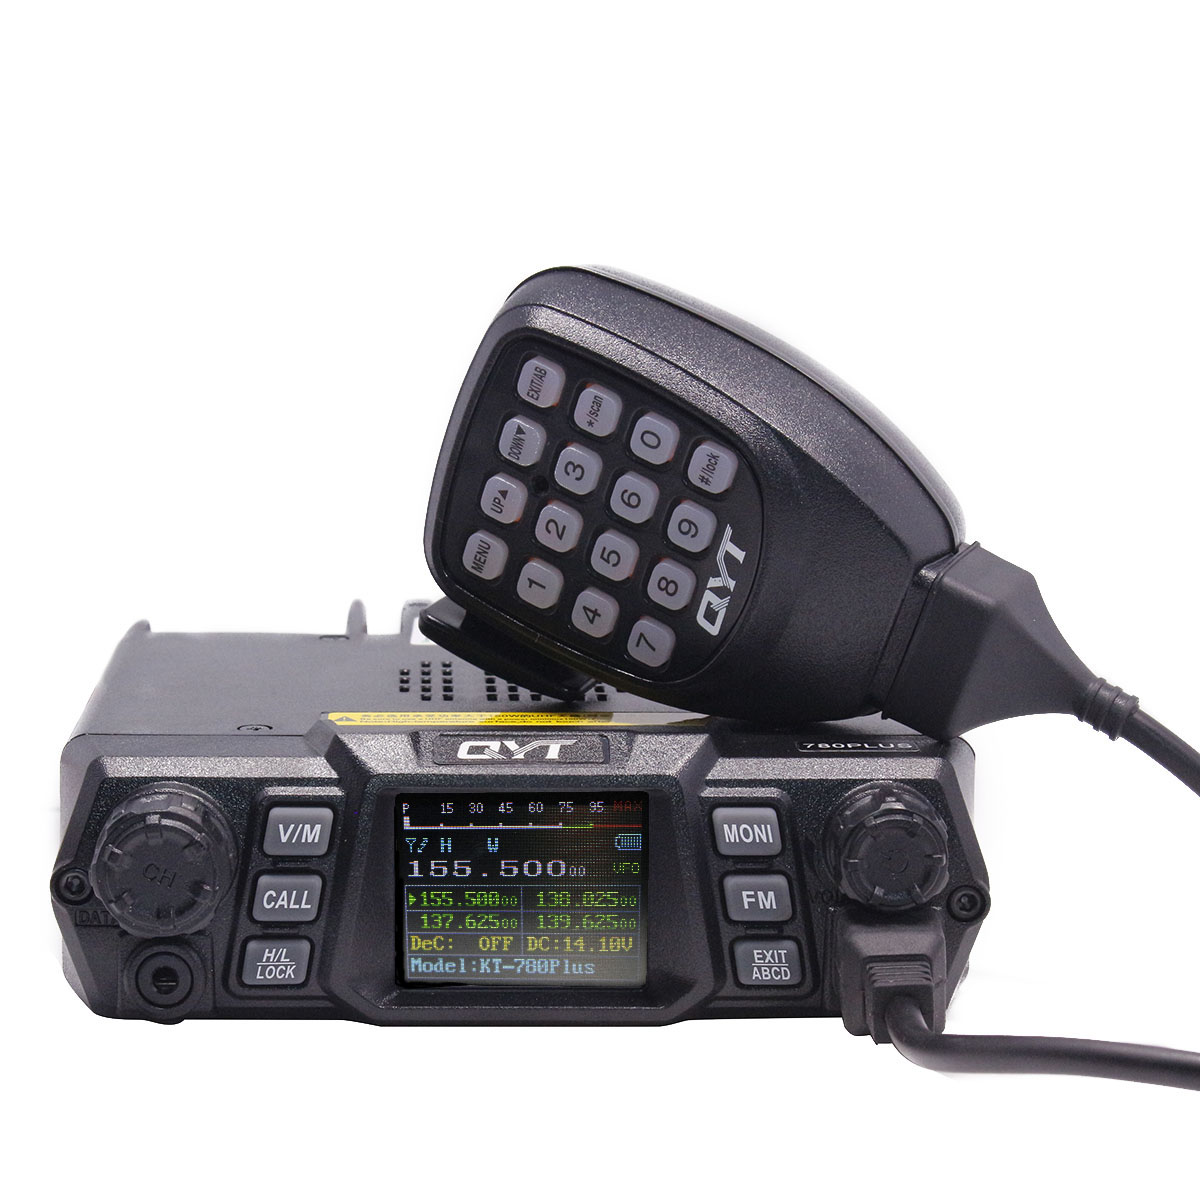 QYT KT-780 Plus 100 Watts Powerful VHF 136-174mhz Ham Mobile Radio Transceiver 200channels Long range <strong>communication</strong> KT 780 Plus